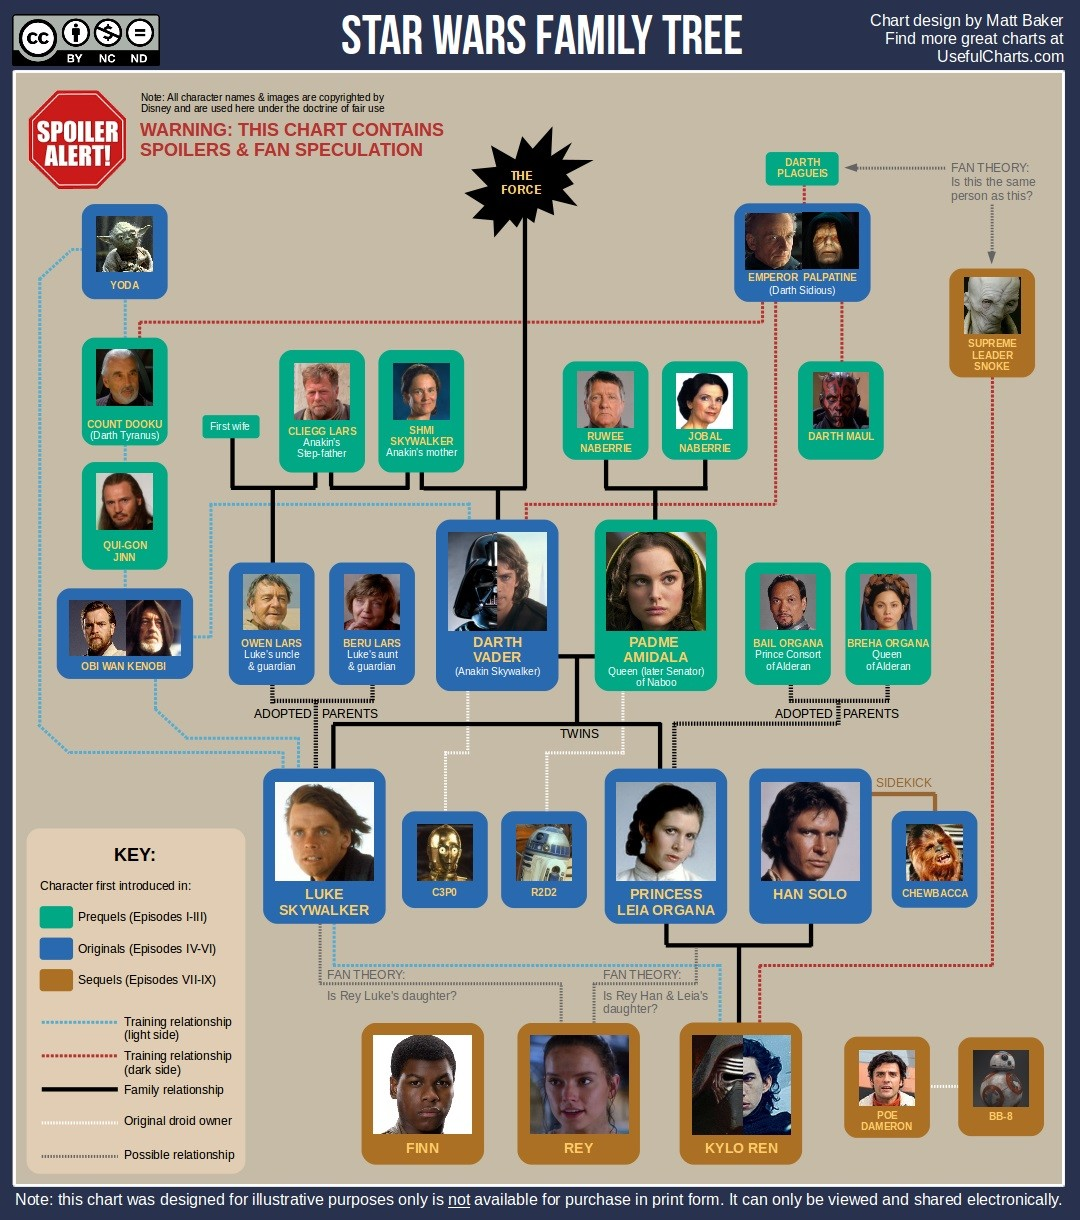 Star Wars Family Tree: L'albero genealogico degli Skywalker